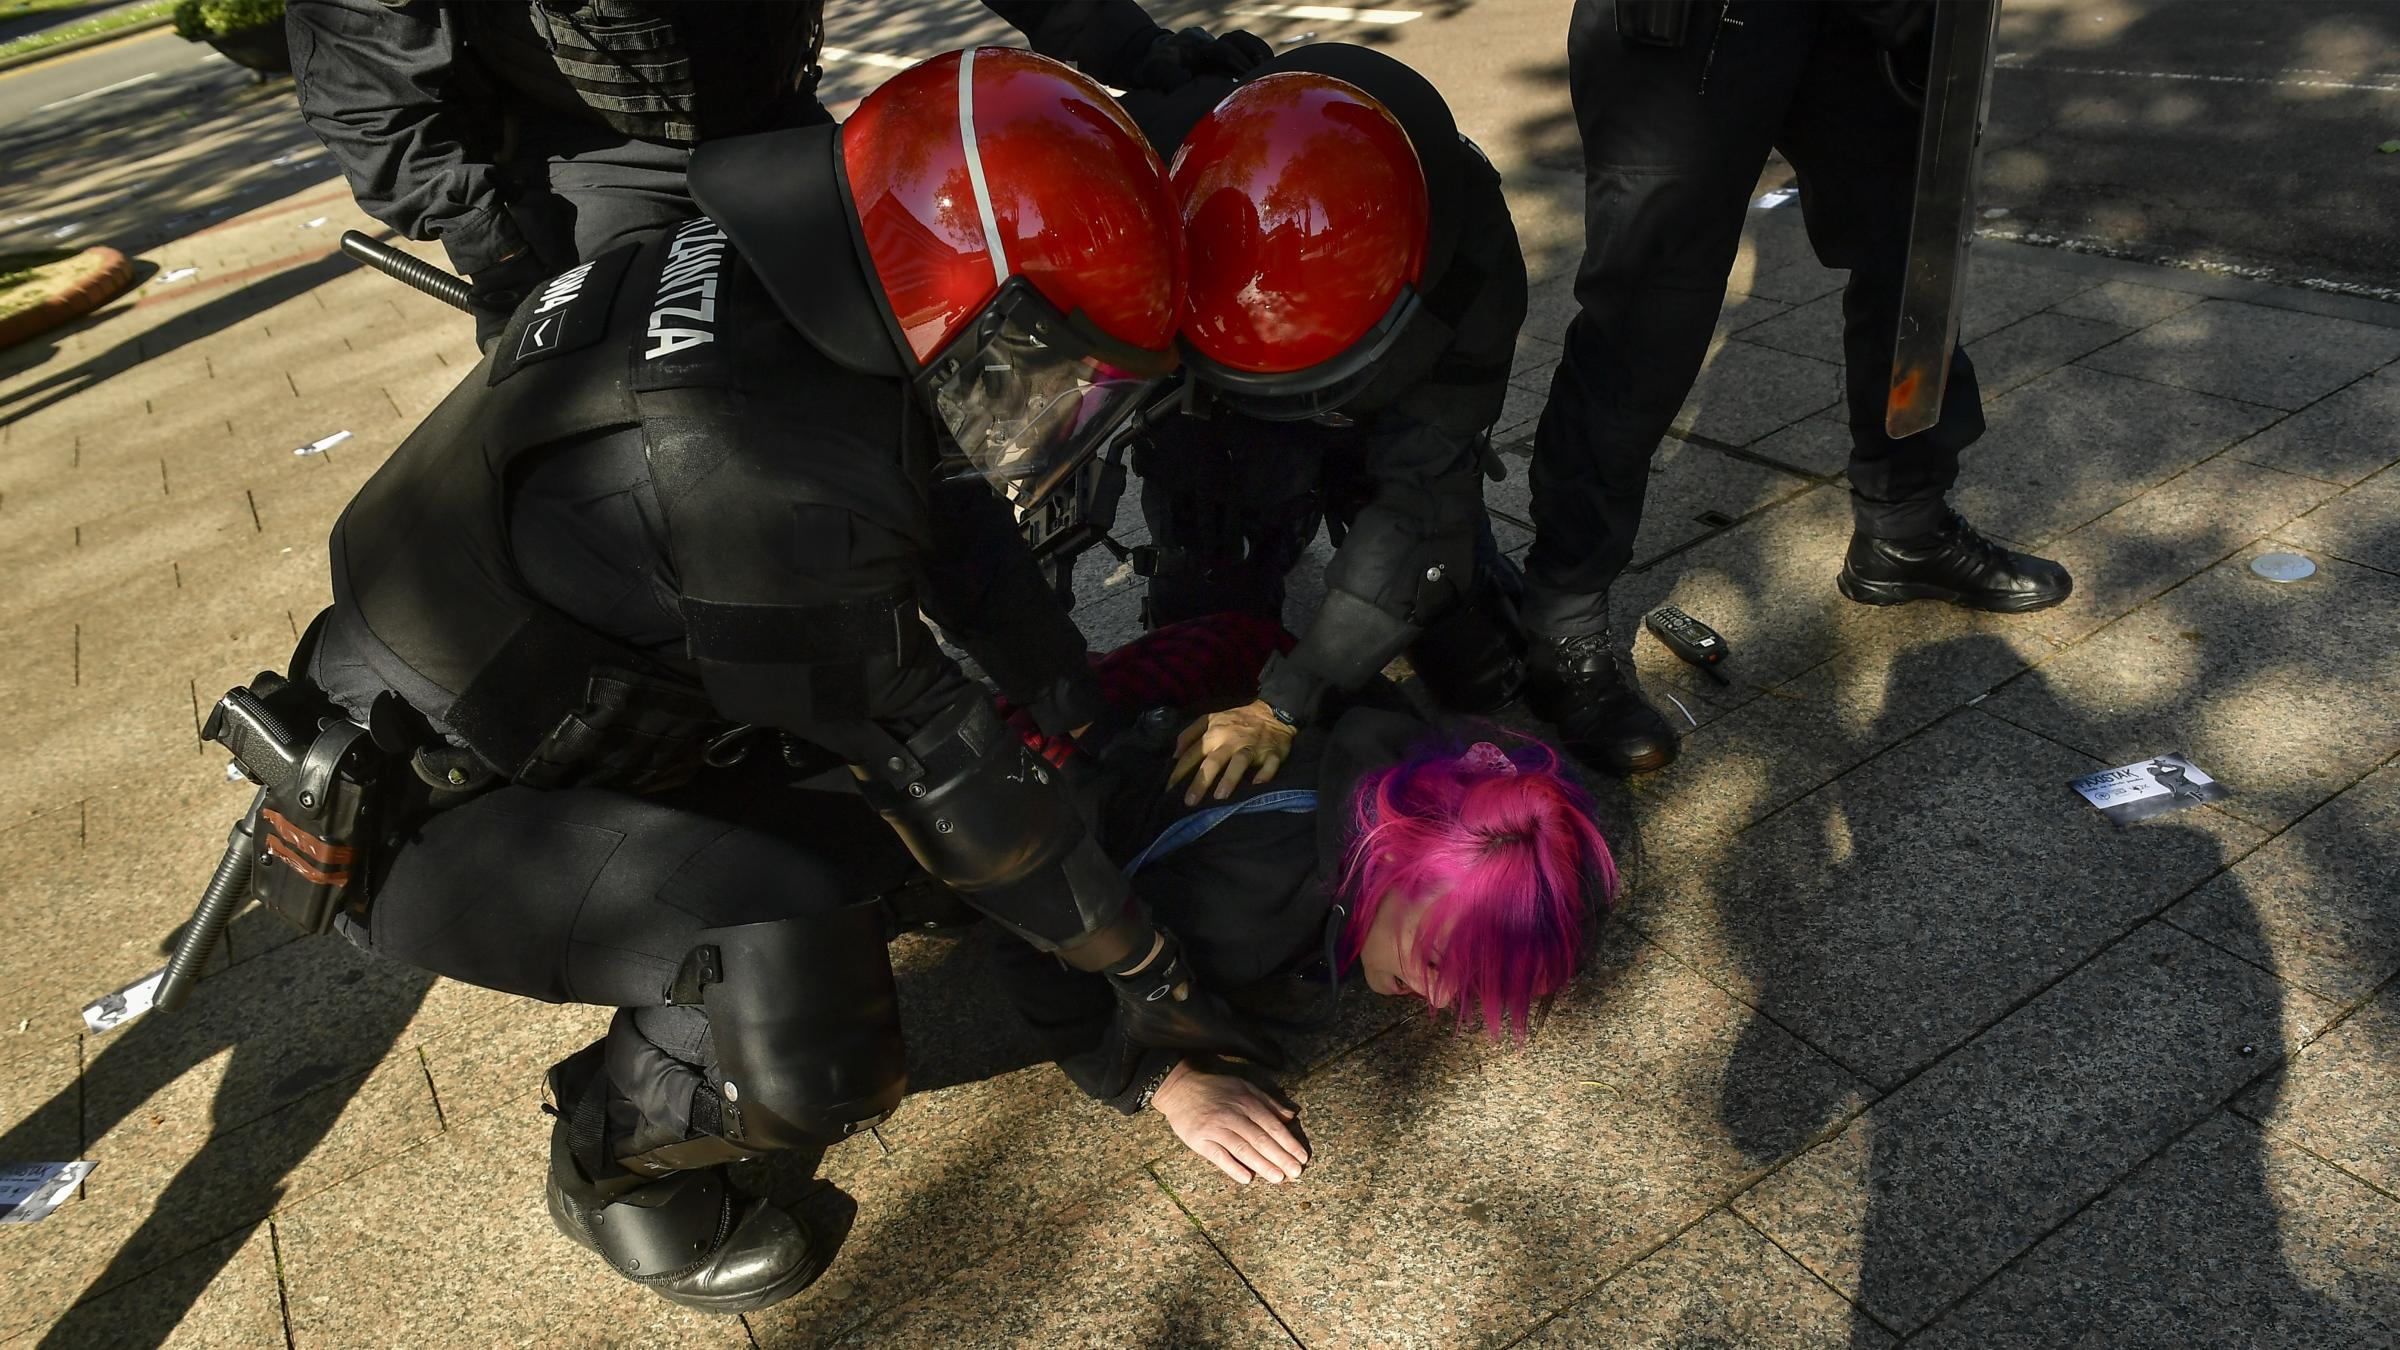 Police in Spain clash with protesters targeting far-right party